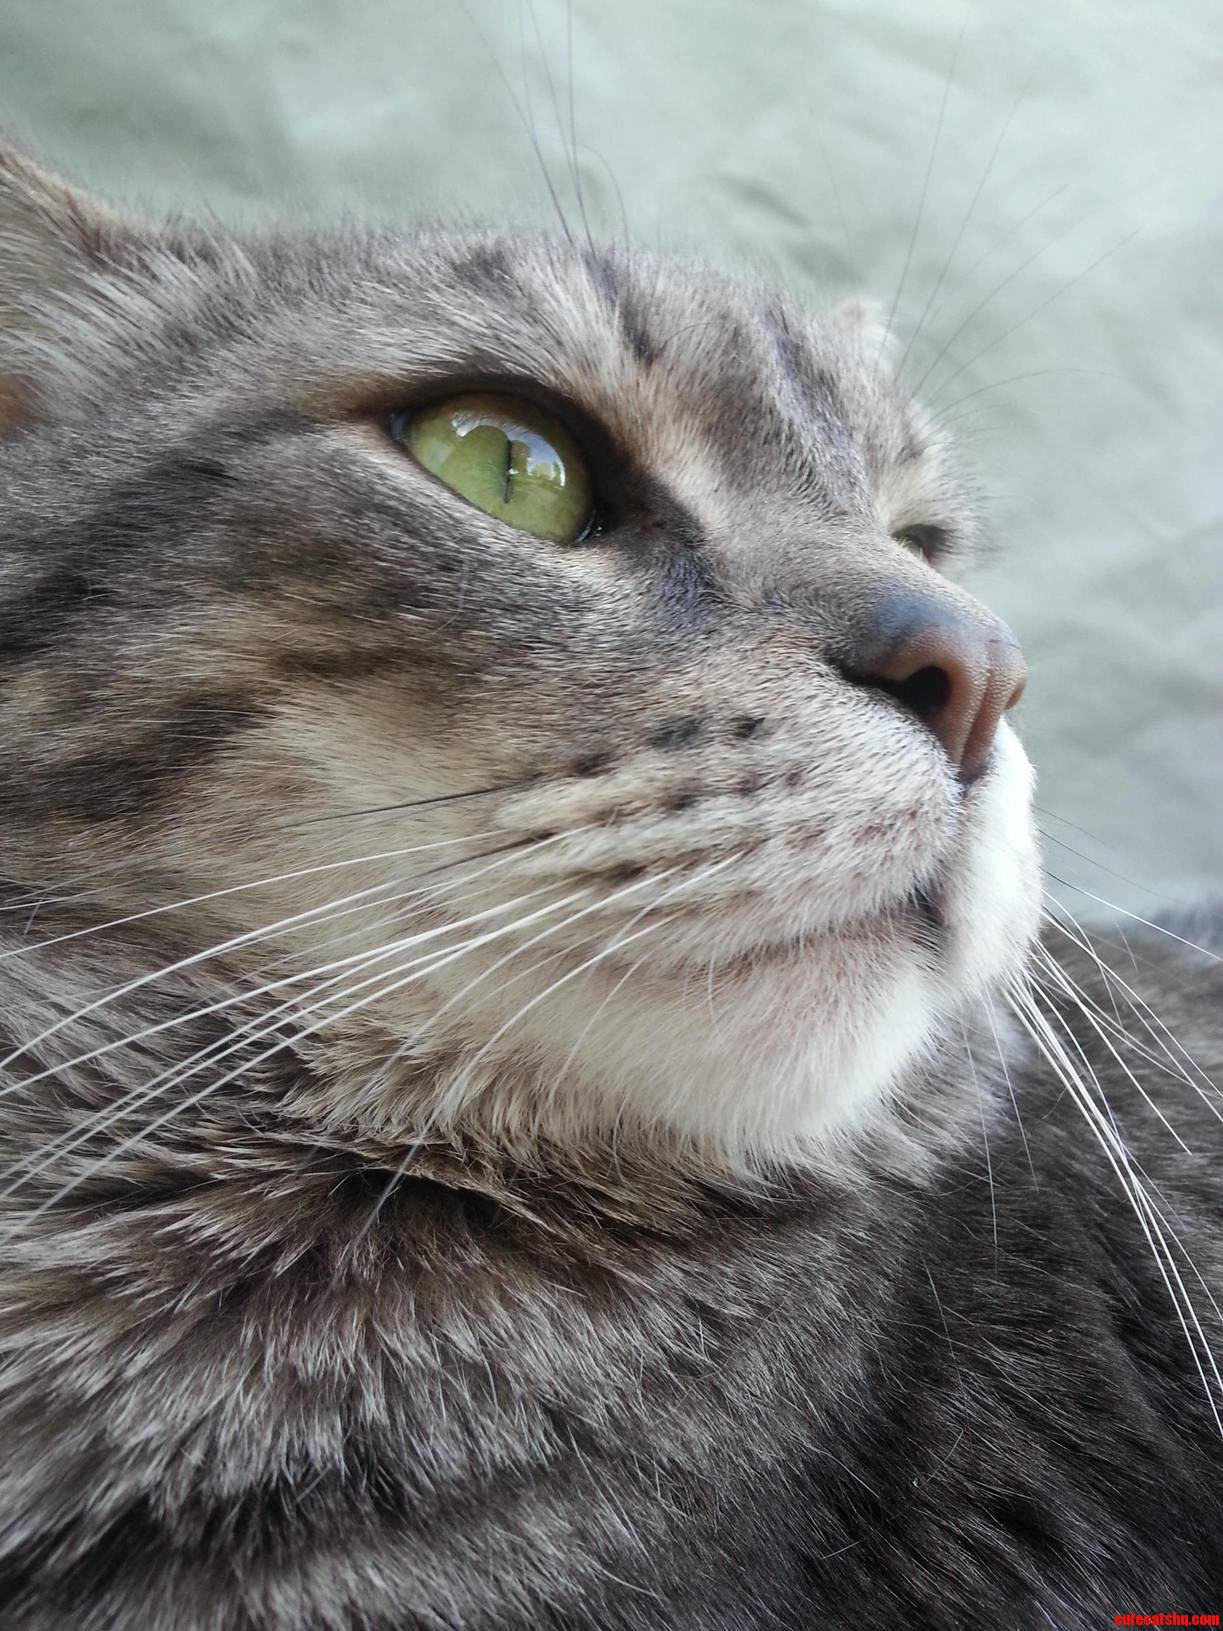 My Cat Looks As If Hes Pondering A Complicated Theory…